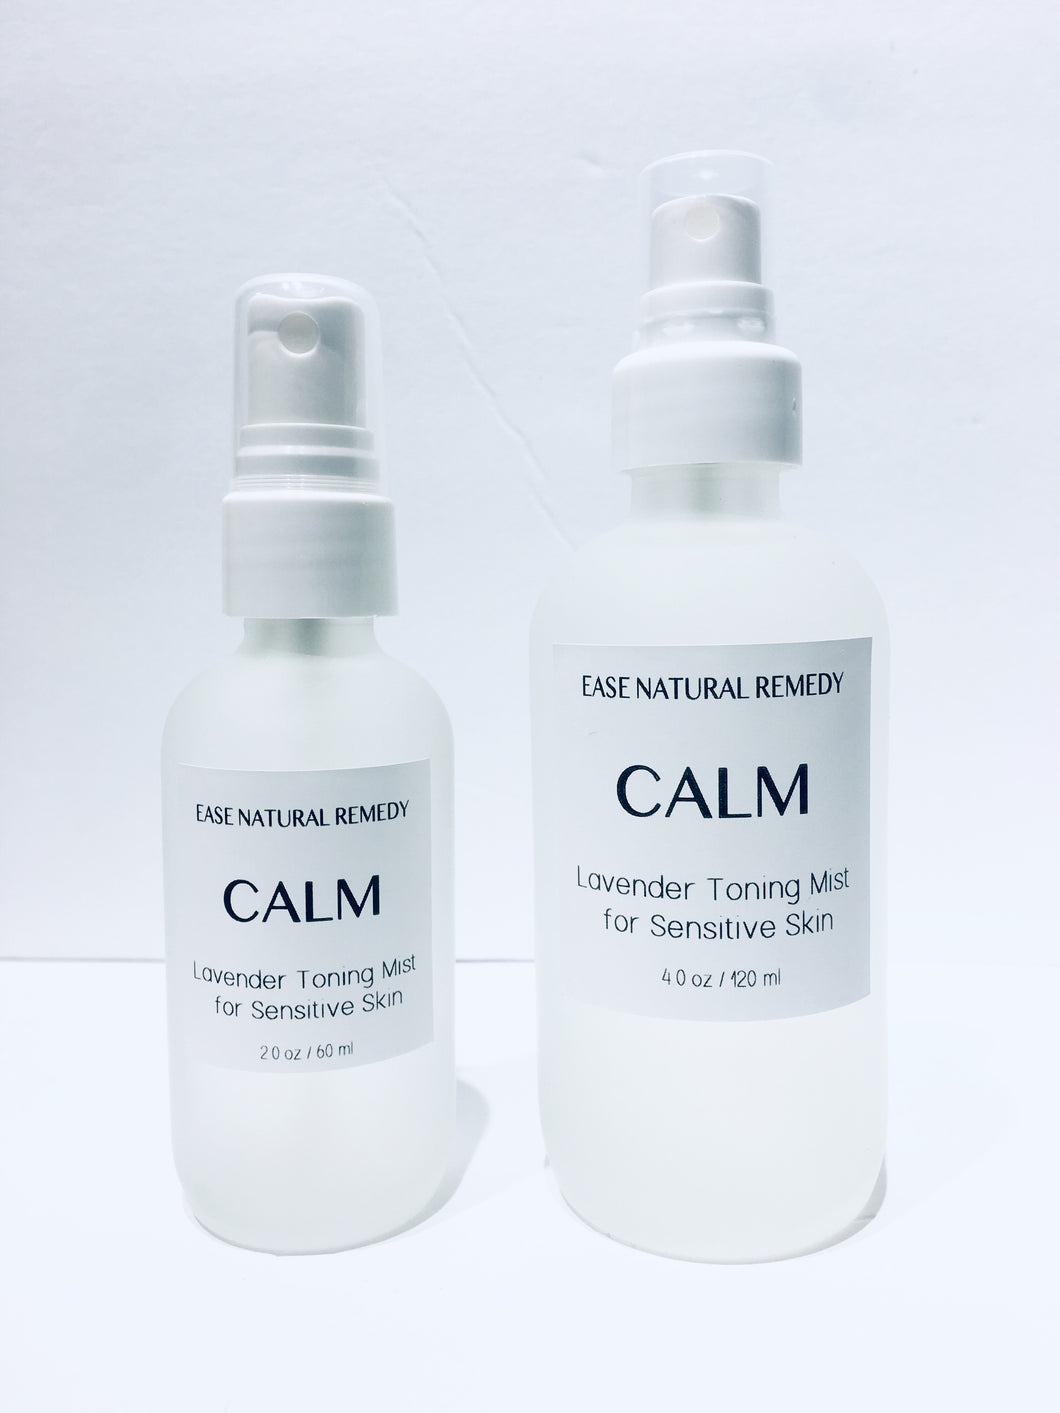 CALM - Organic Lavender hydrosol Toning mist for Sensitive Skin (Acne, Inflamed, Irritated Skin)